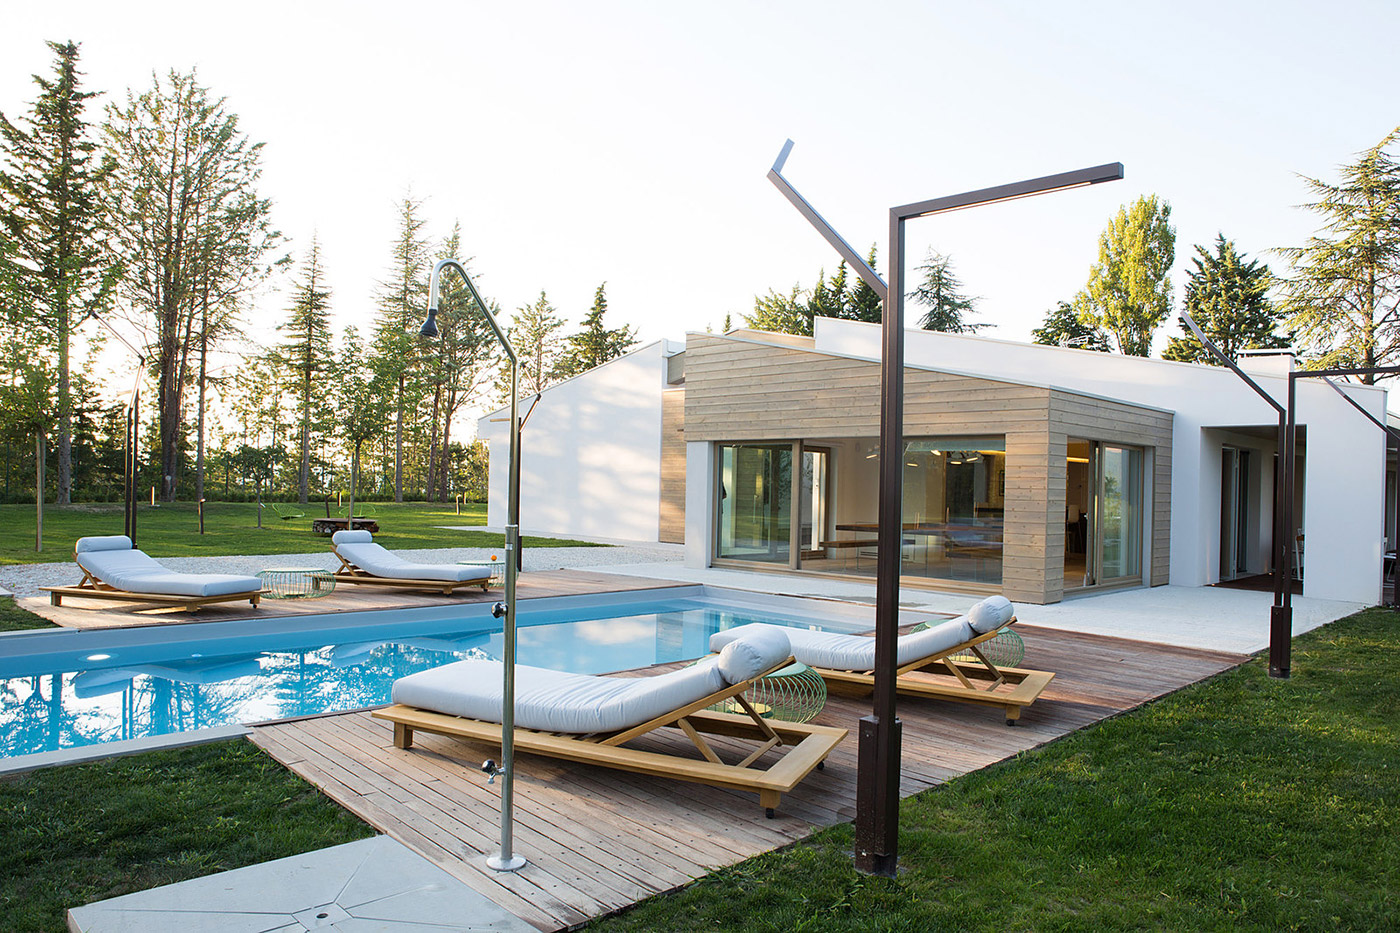 Minimalist family house with pool